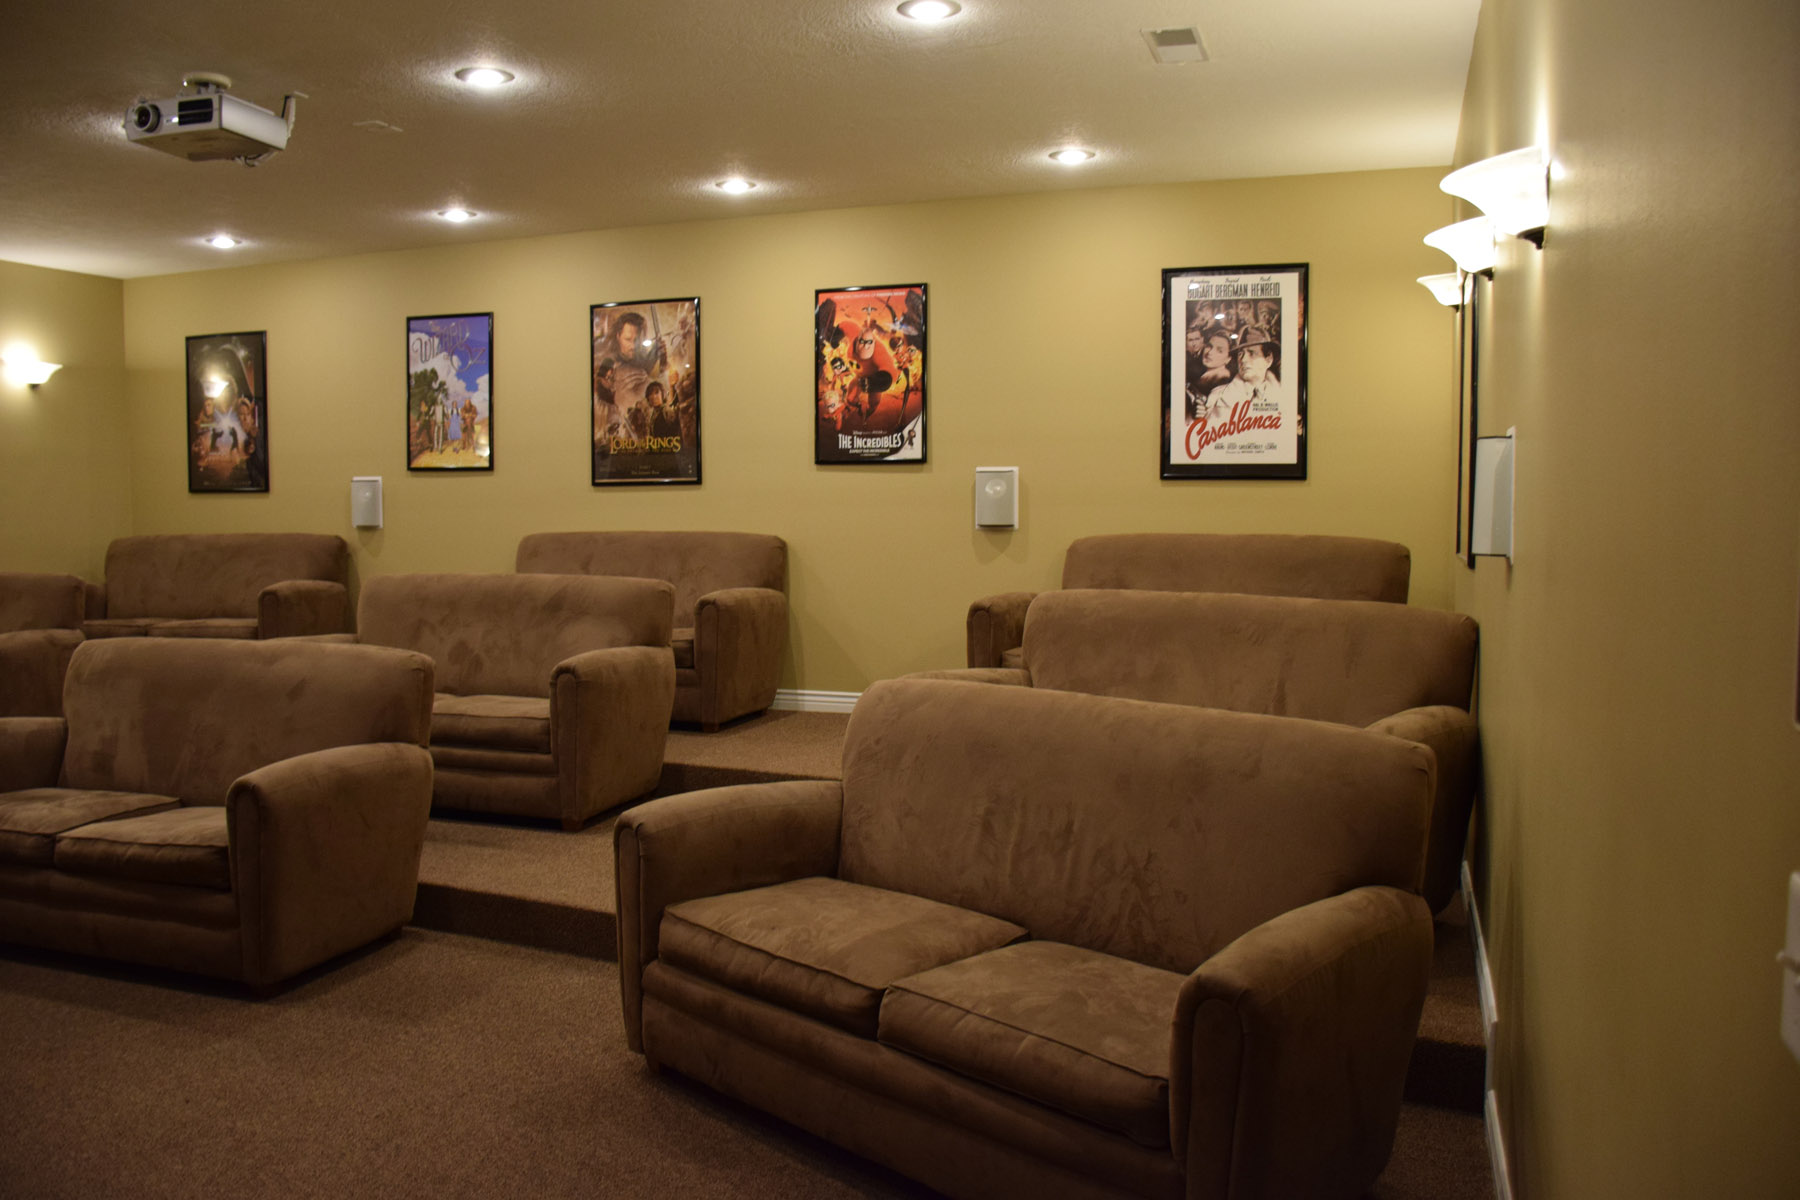 100 Stadium Seating Couch Theater Room Seating Gallery For